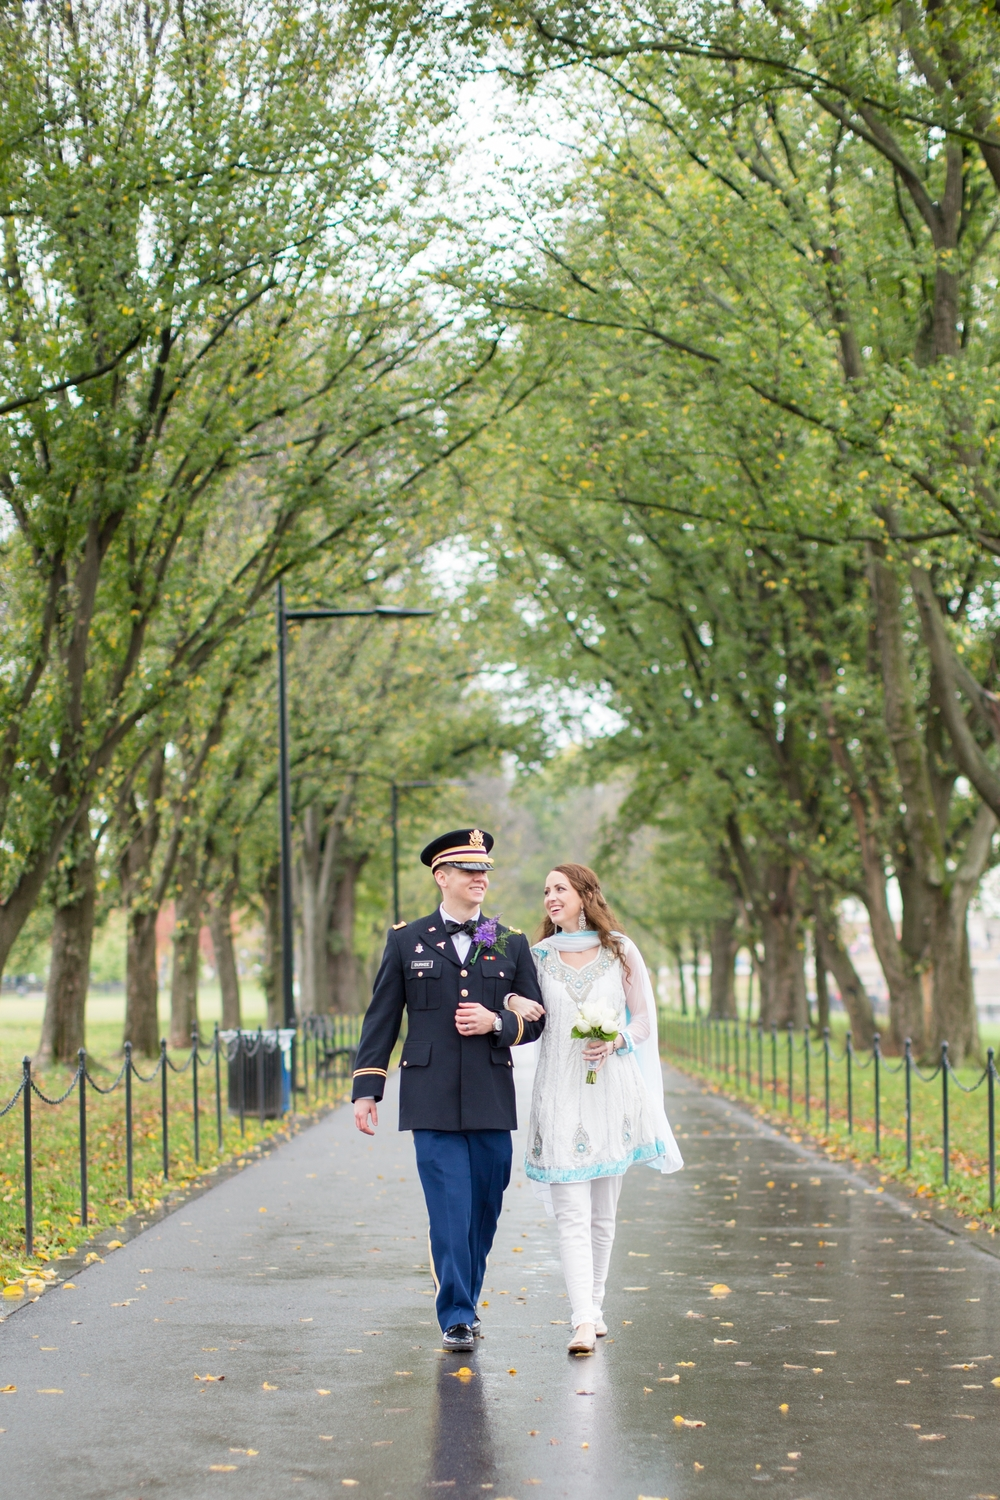 2. Durkee Wedding Bride & Groom Portraits-447_anna grace photography virginia wedding photographer dc war memorial washington dc photo.jpg